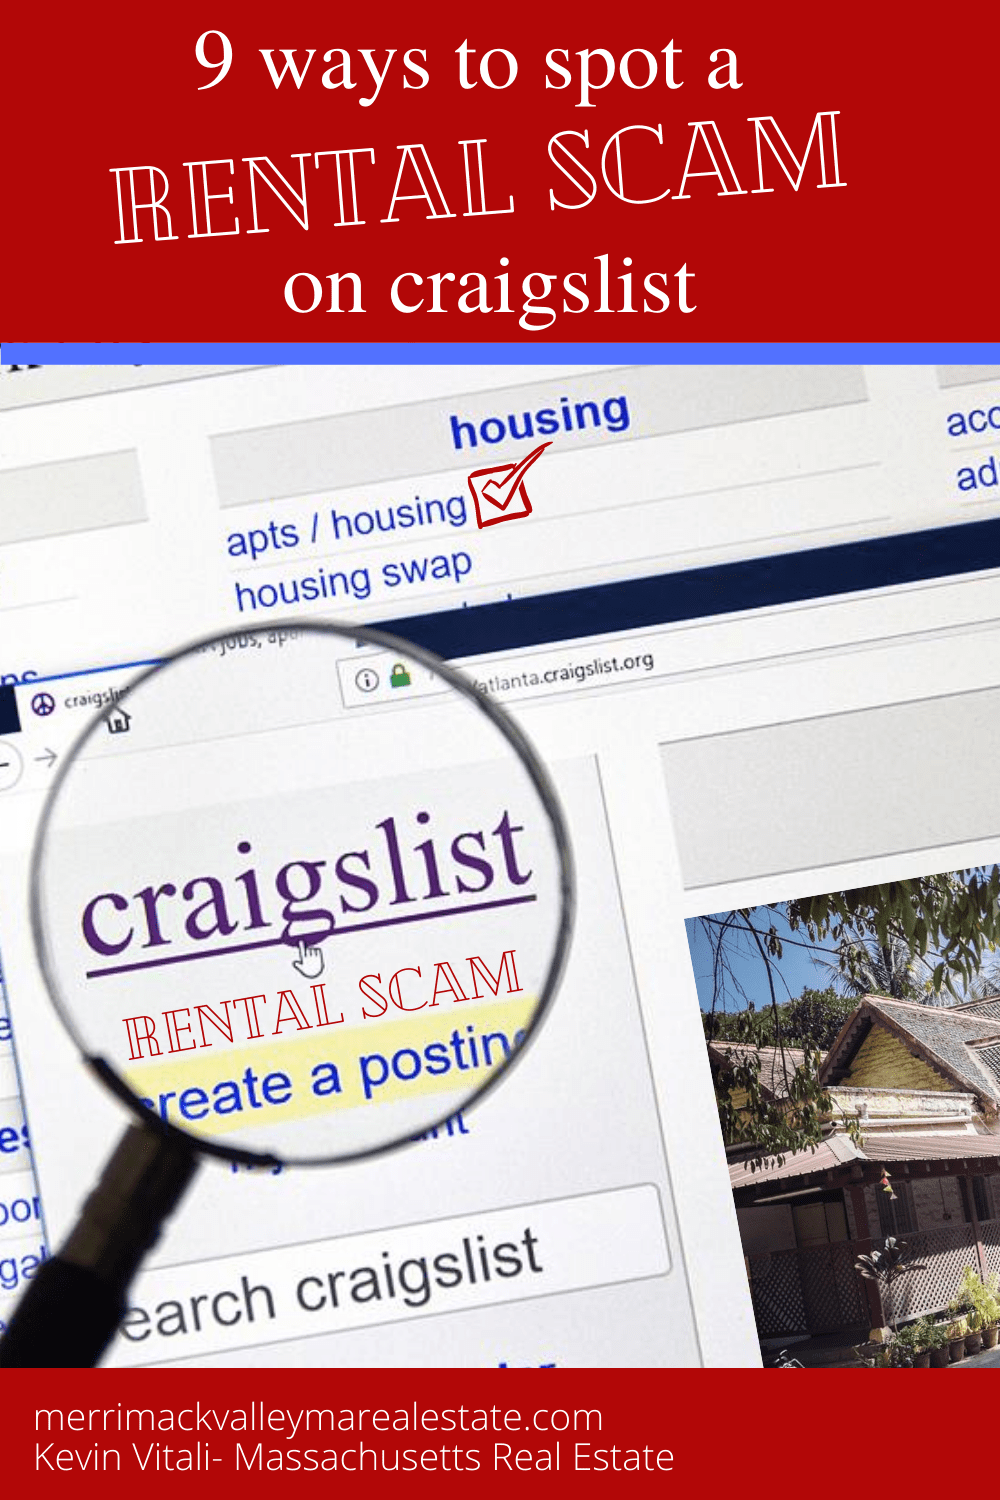 9 Ways to Spot a Rental Scam on Craigslist